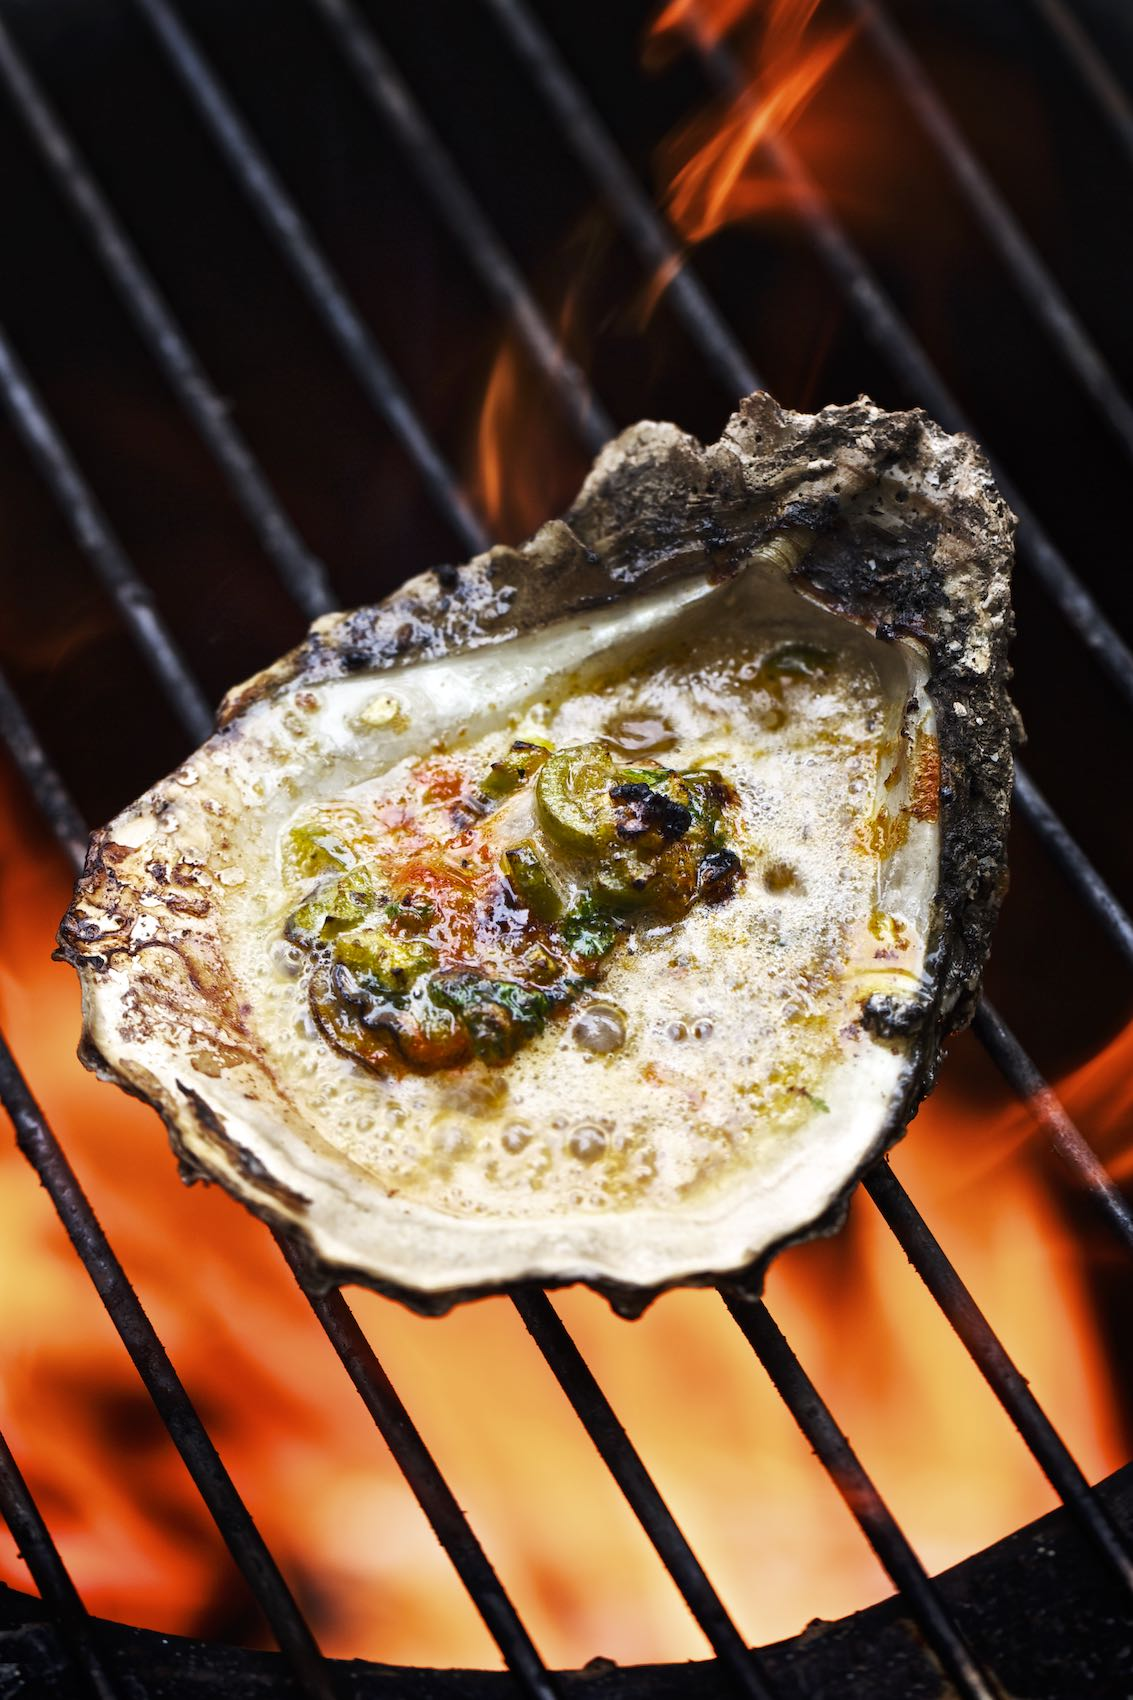 Jody Horton Photography - Single oyster sitting on a fire grill.